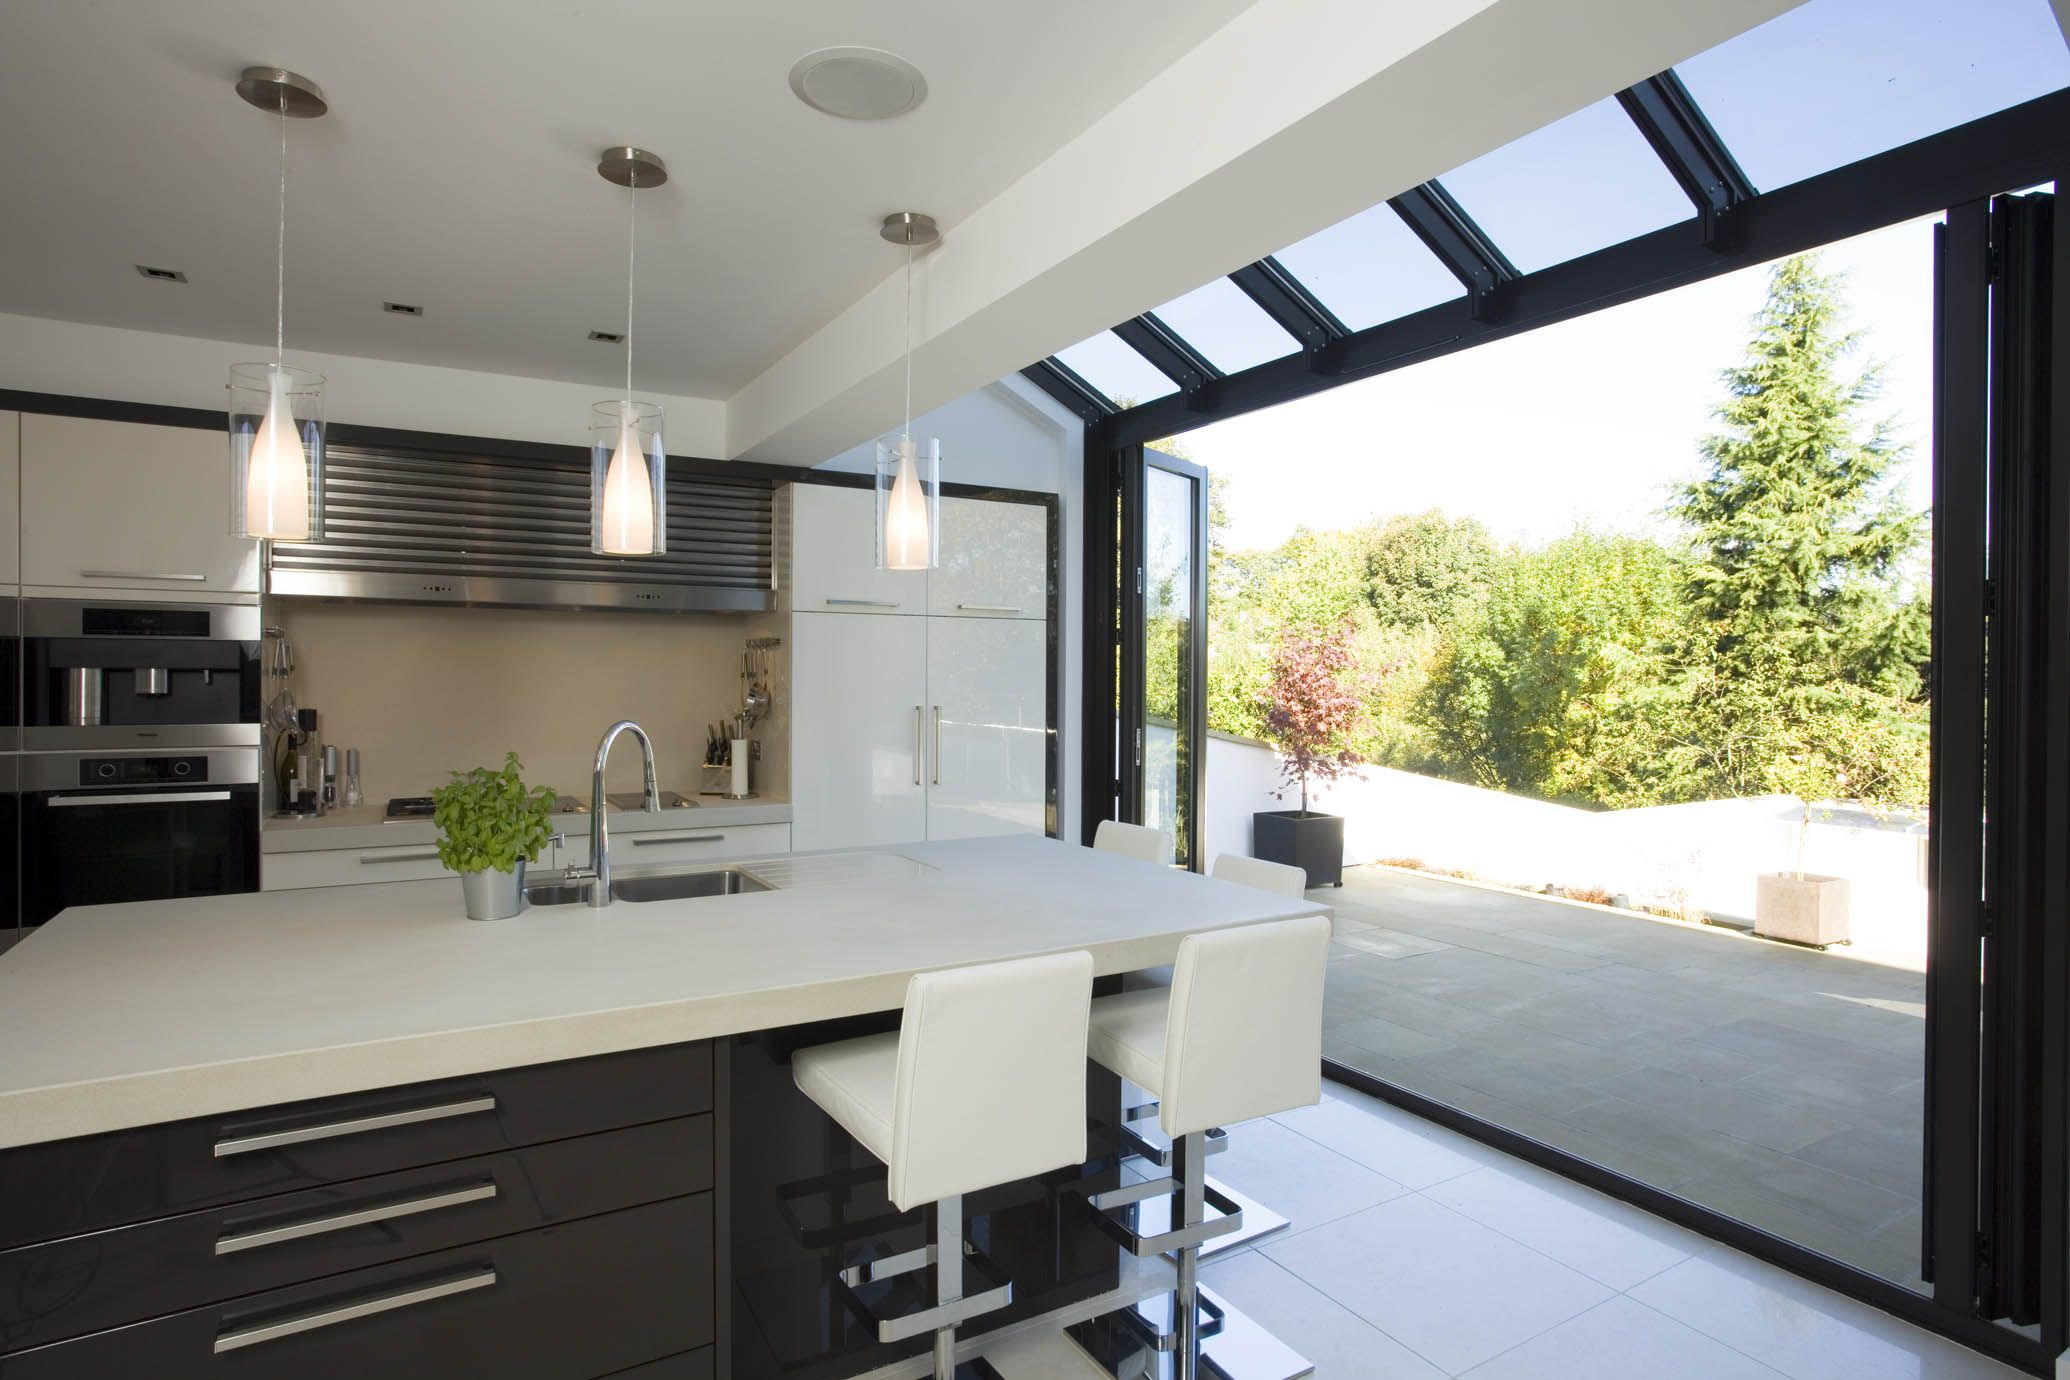 Mg 2070 1380 contemporary extension for Kitchen diner extension ideas